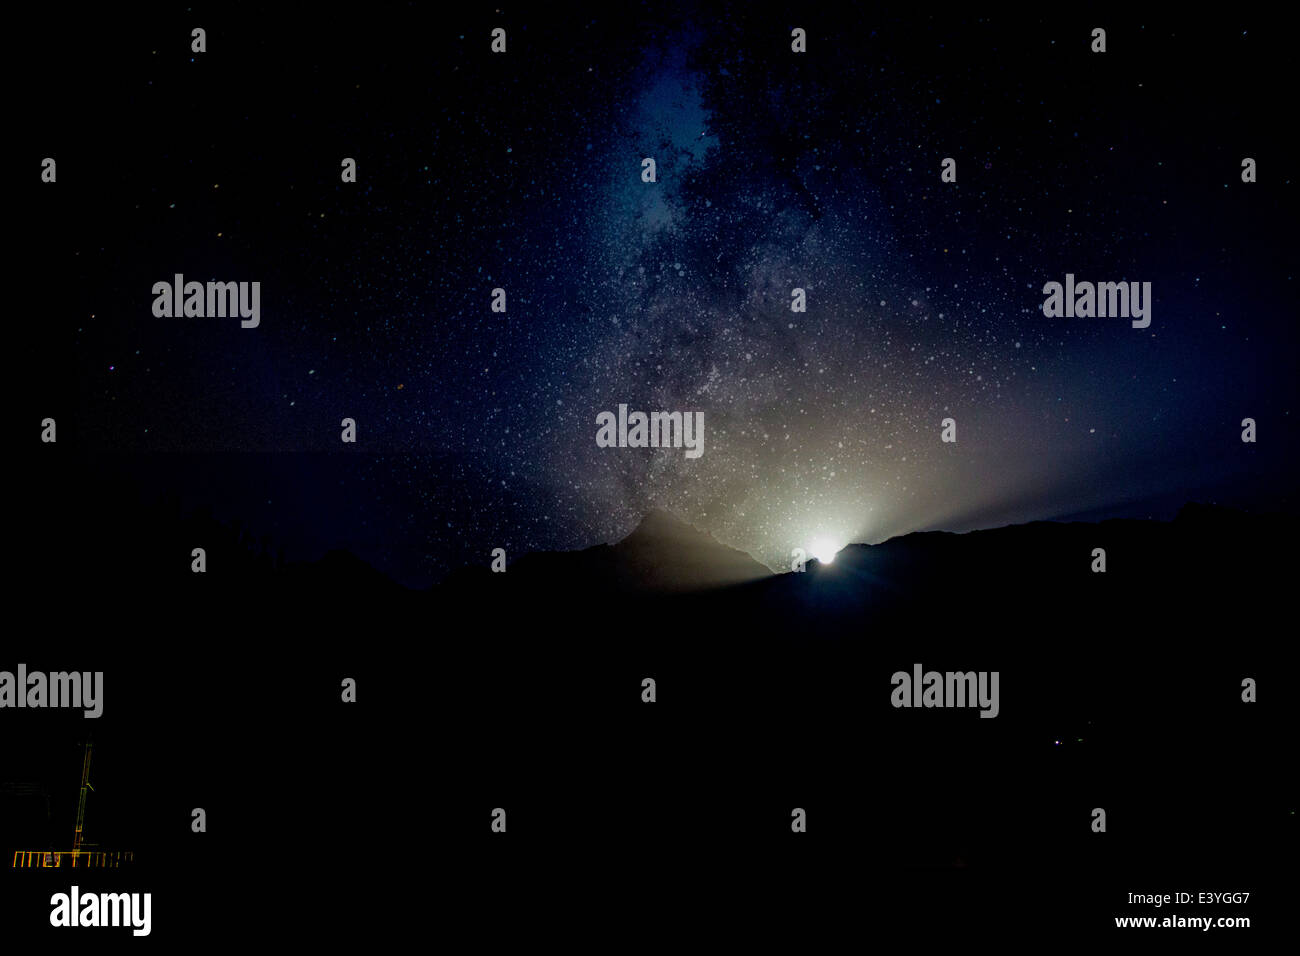 Moonrise at the Himalayas with the Milky way in the star-filled sky - Stock Image